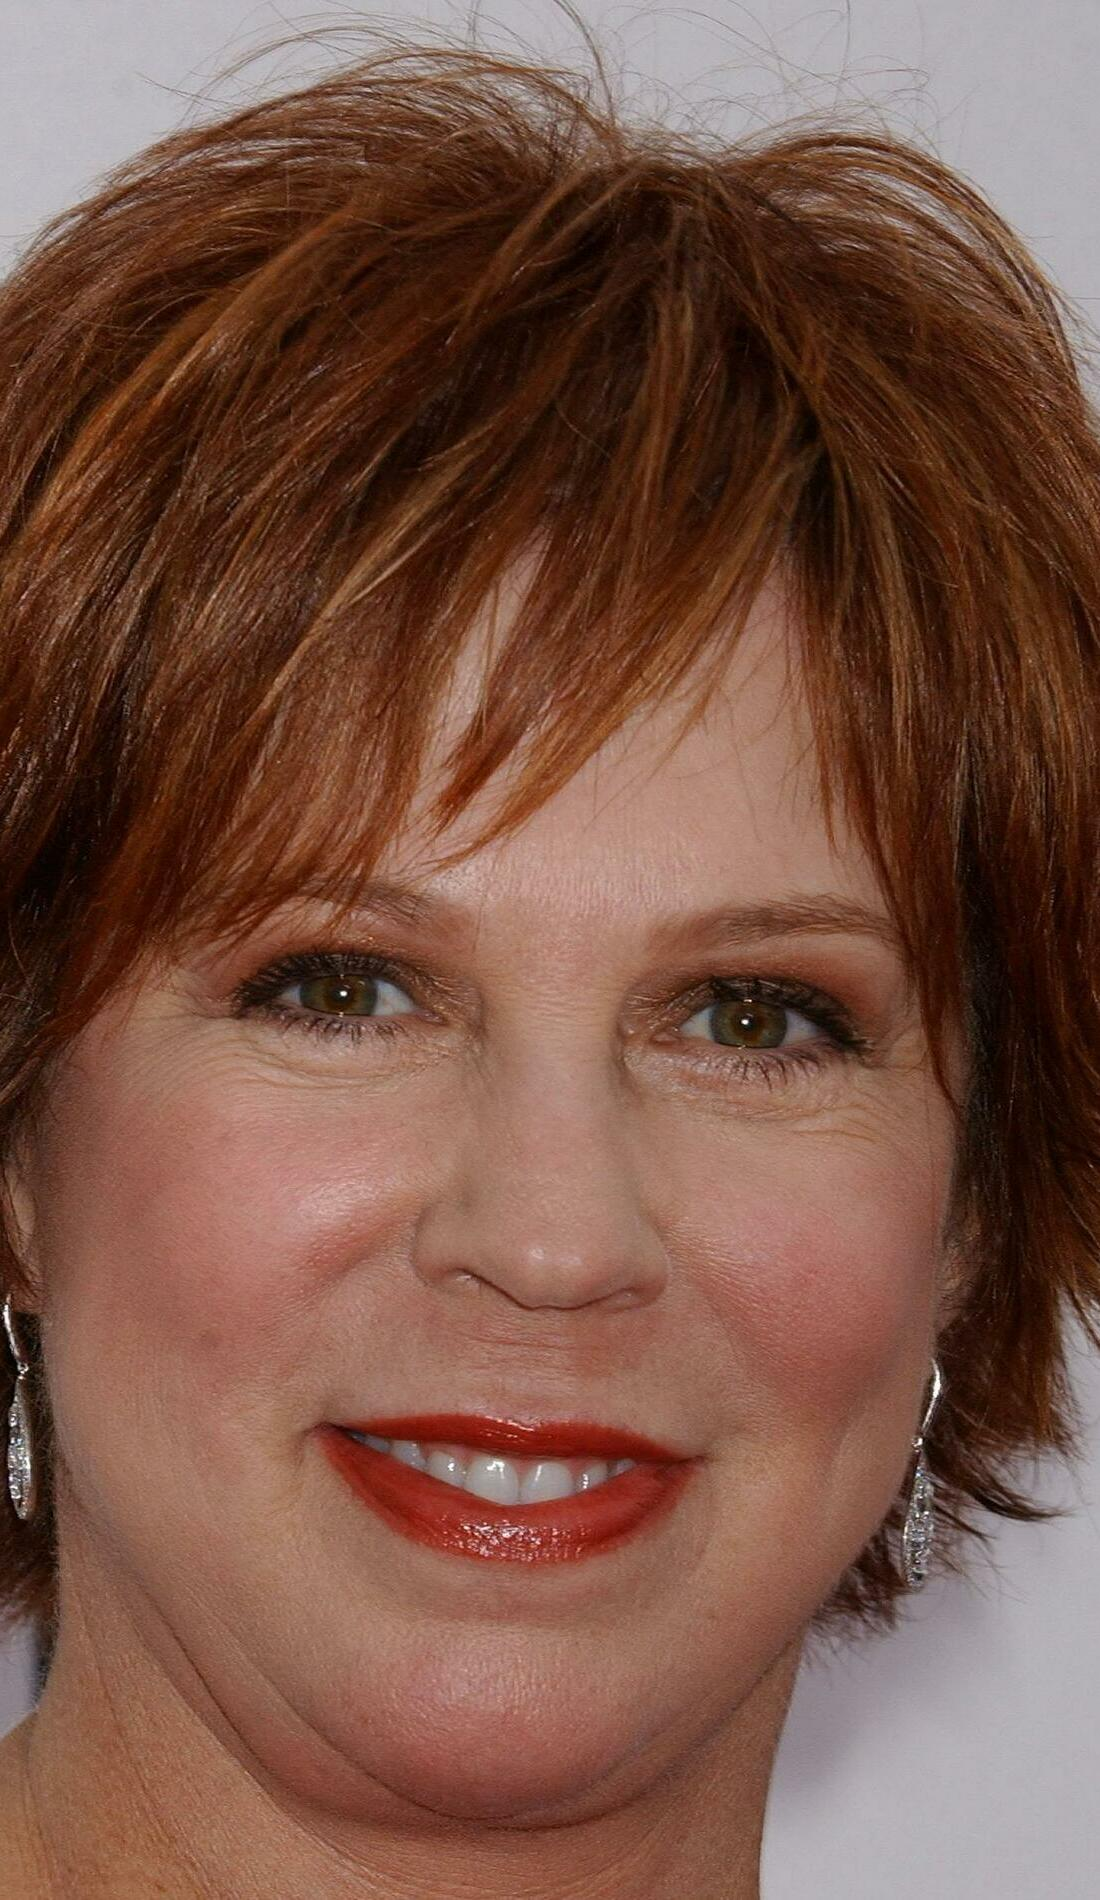 A Vicki Lawrence live event